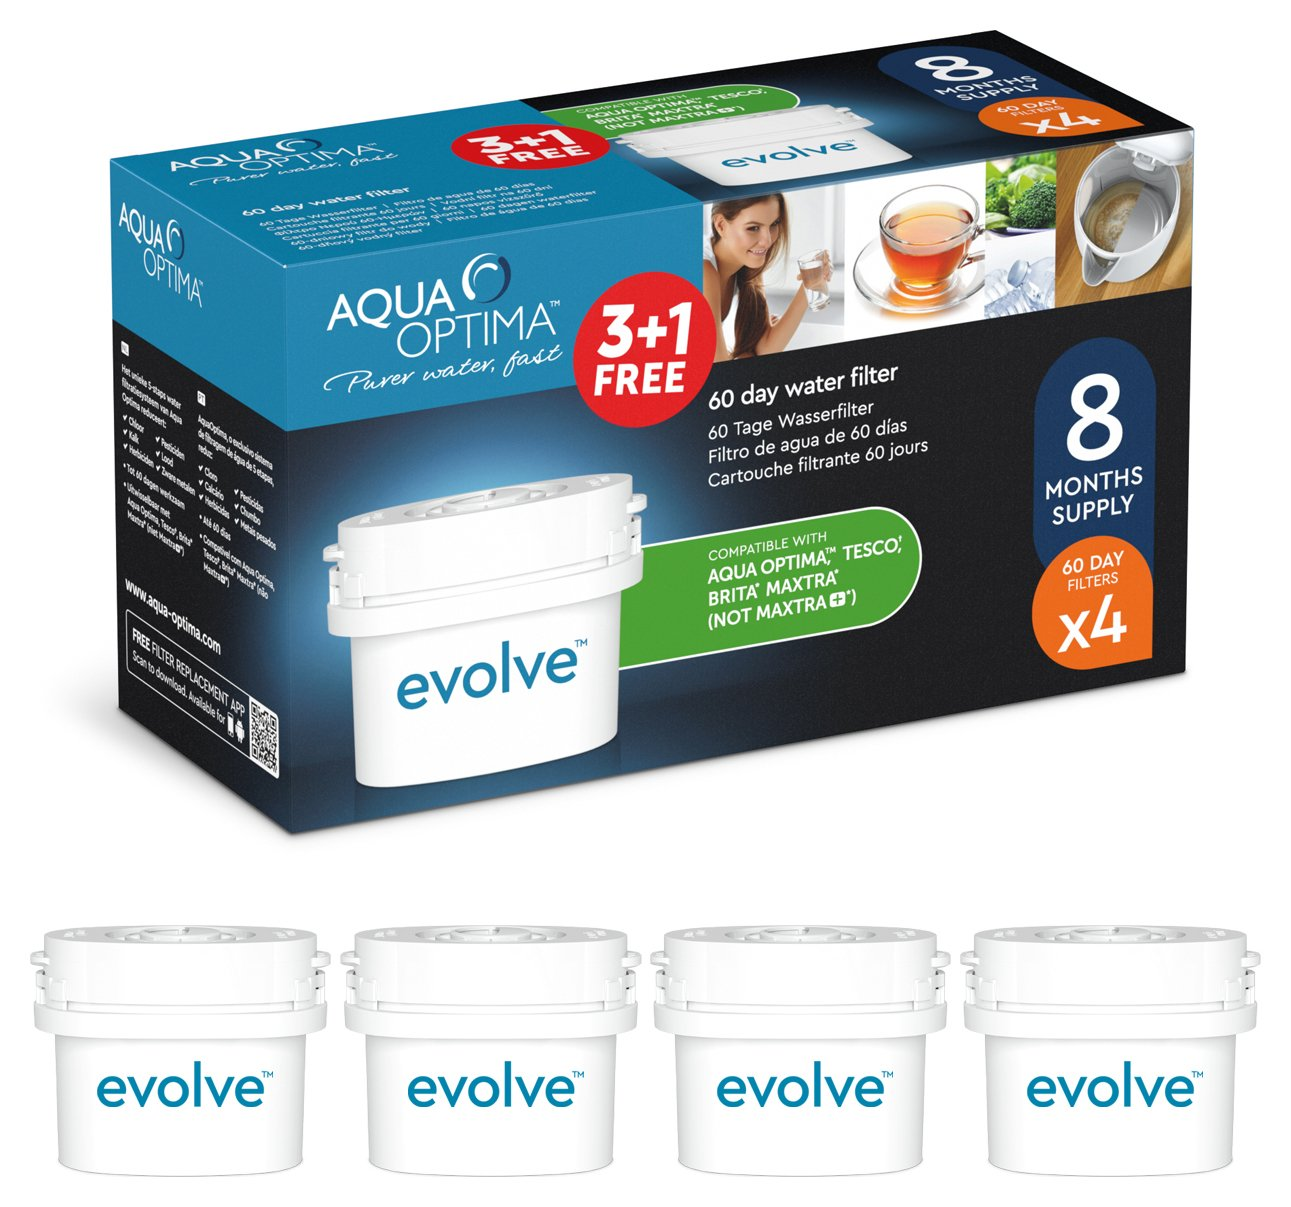 Image of Aqua Optima - Evolve 60 Day Water Filter - 4 Pack